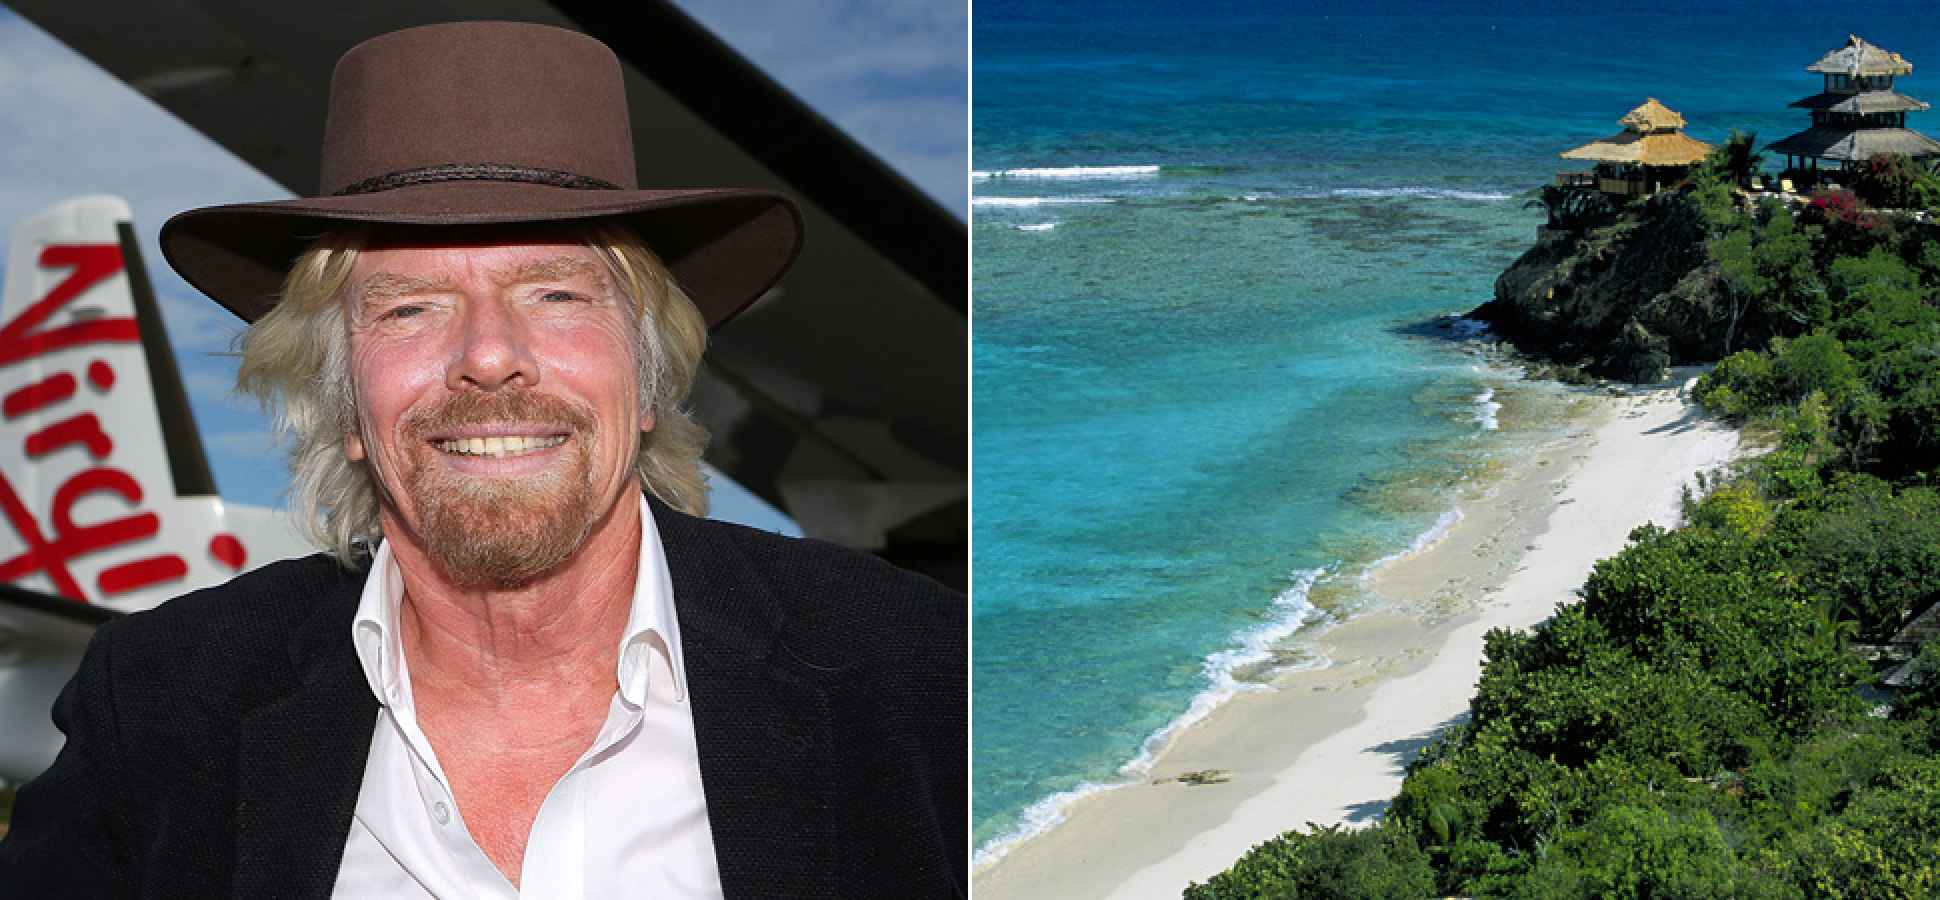 How to Win a 5-Day All-Expenses Paid Trip to Richard Branson's 'Entrepreneur's Island'